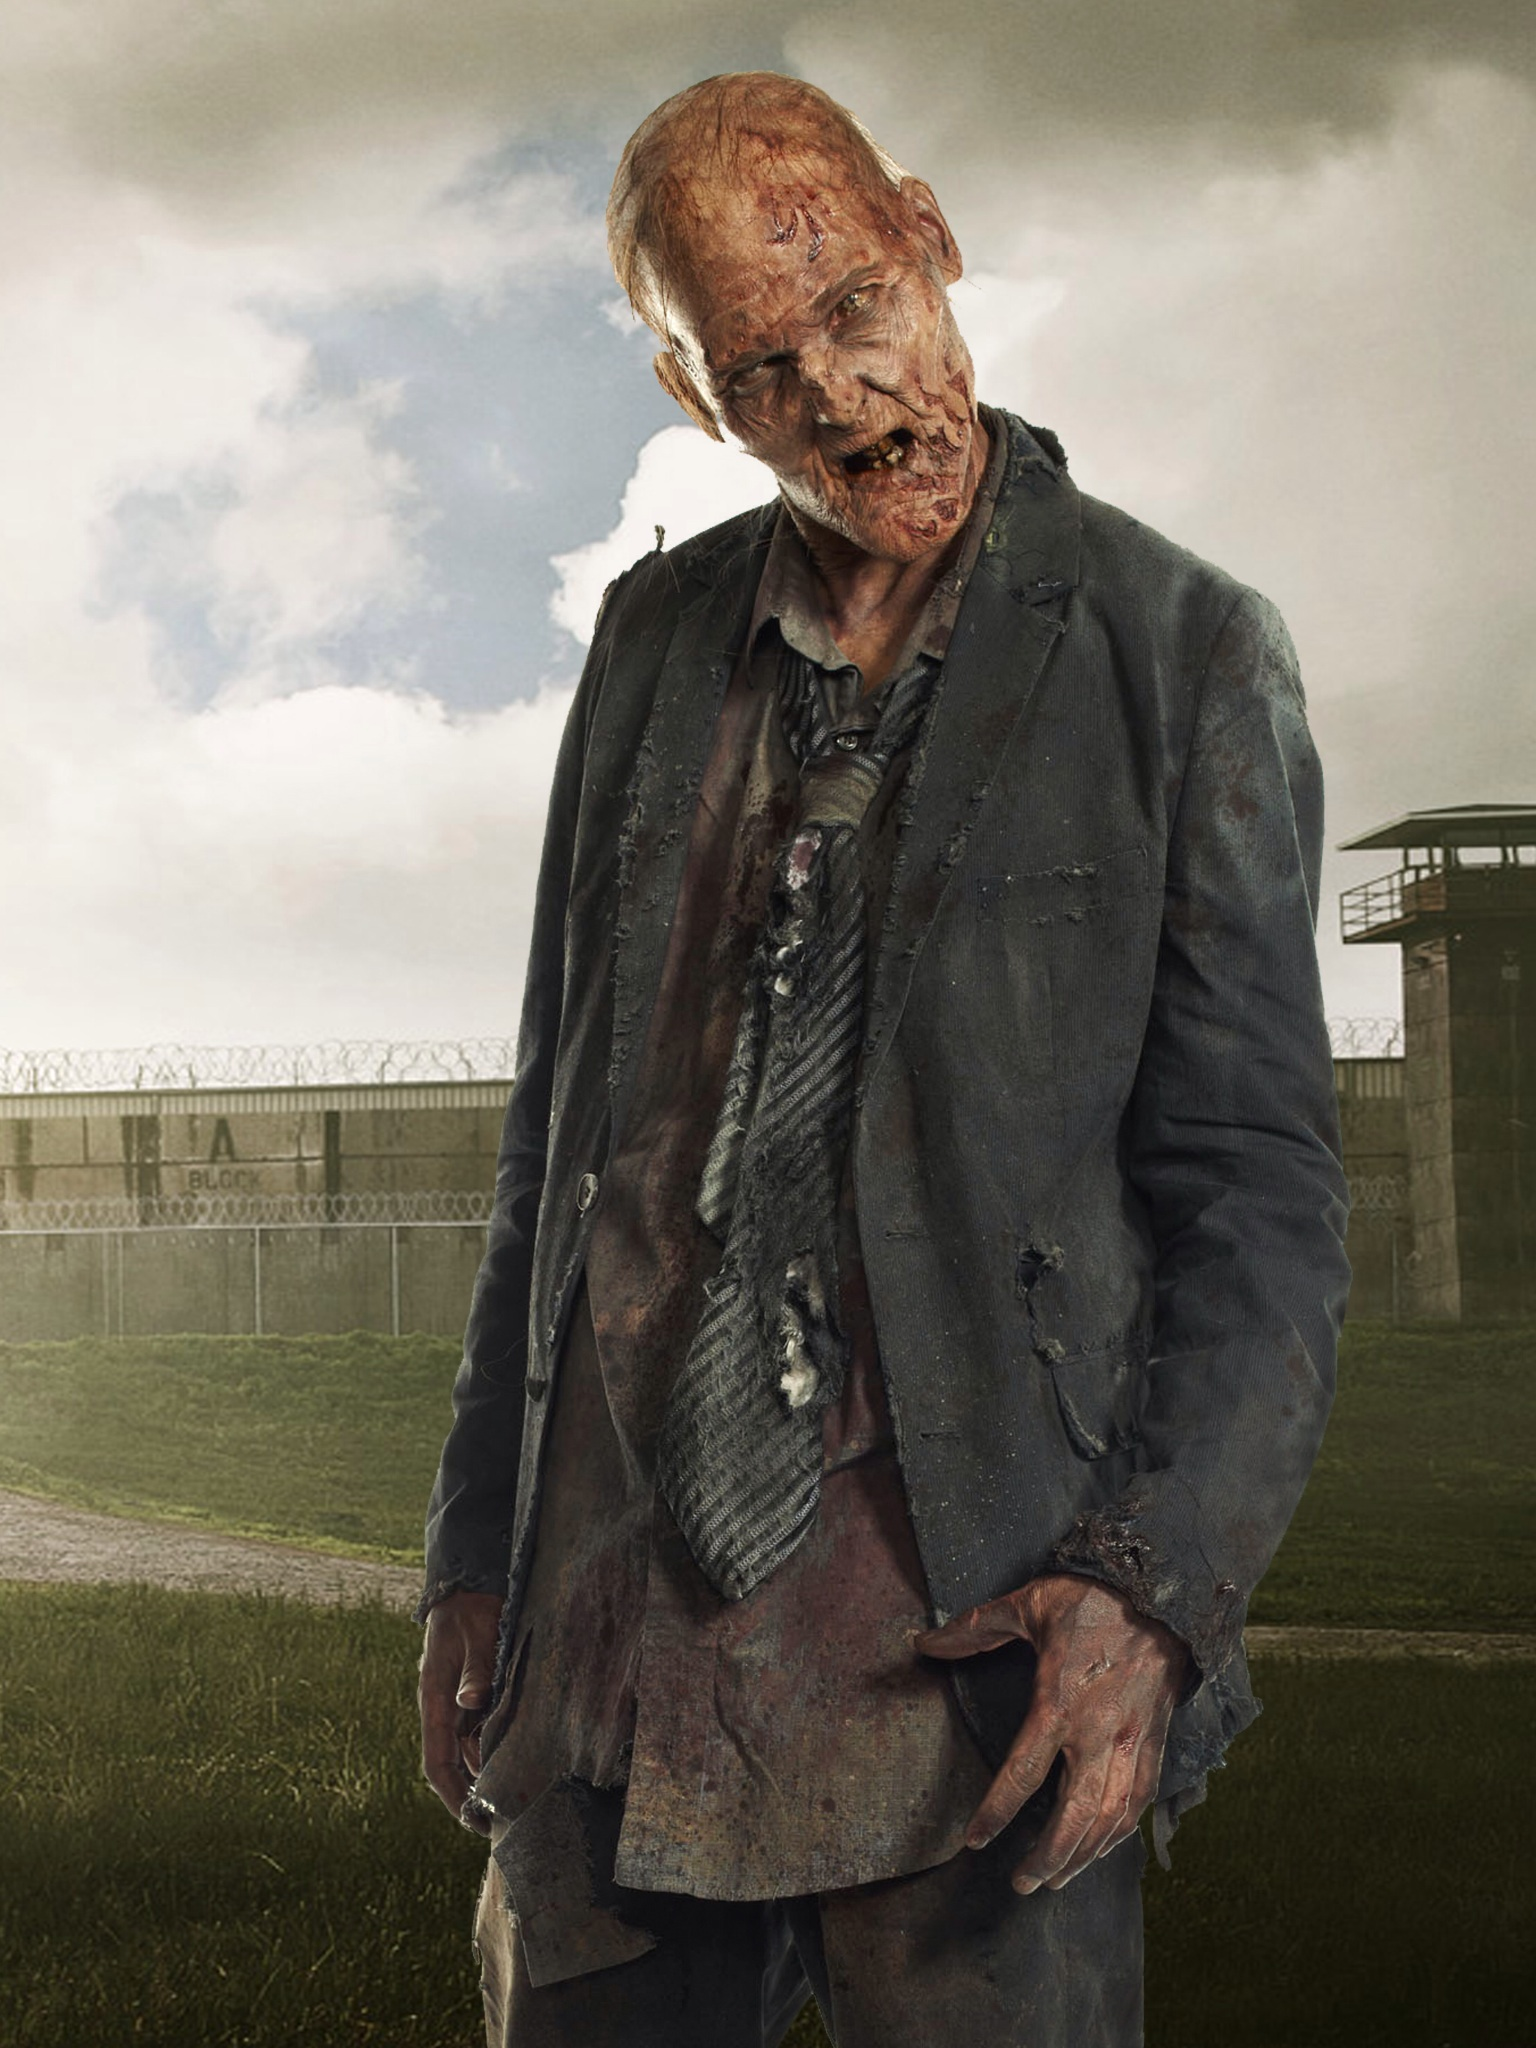 Michael Koske in The Walking Dead Zombie Exclusive Interview: The Walking Deads Michael Koske Talks About Playing A Zombie